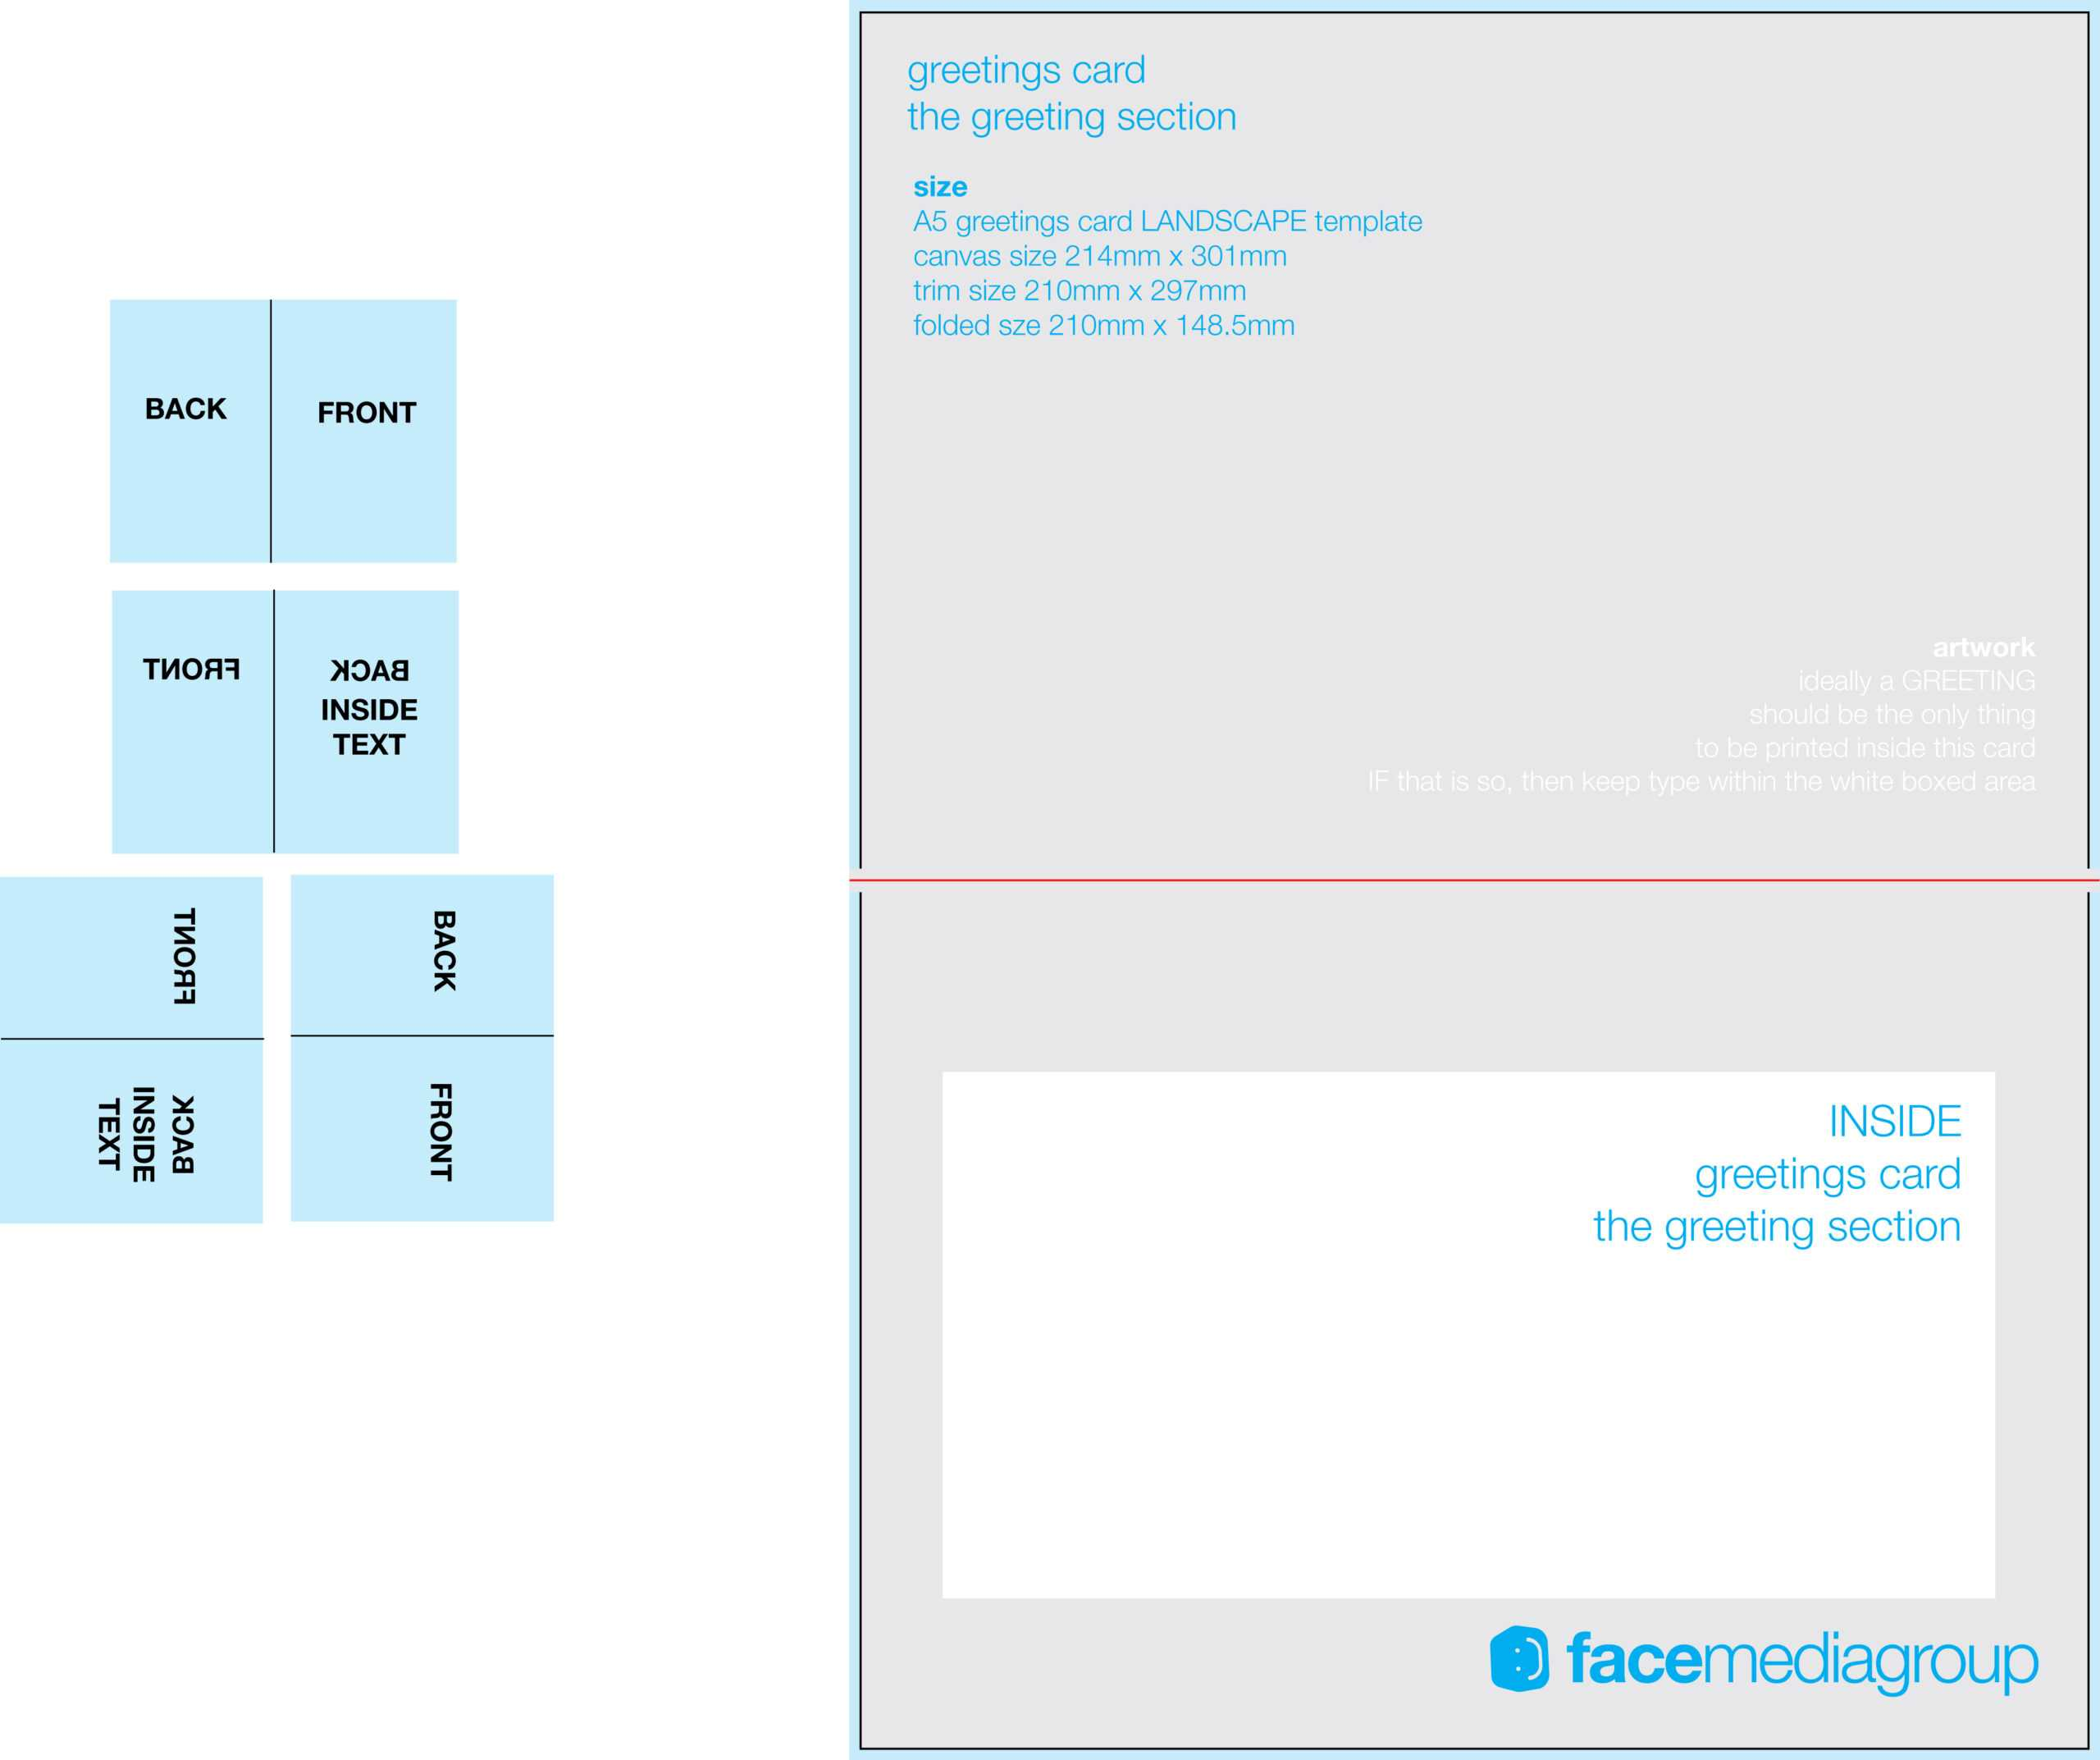 044 A5Card Land In Photoshop Greeting Card Template Psd for Birthday Card Template Indesign